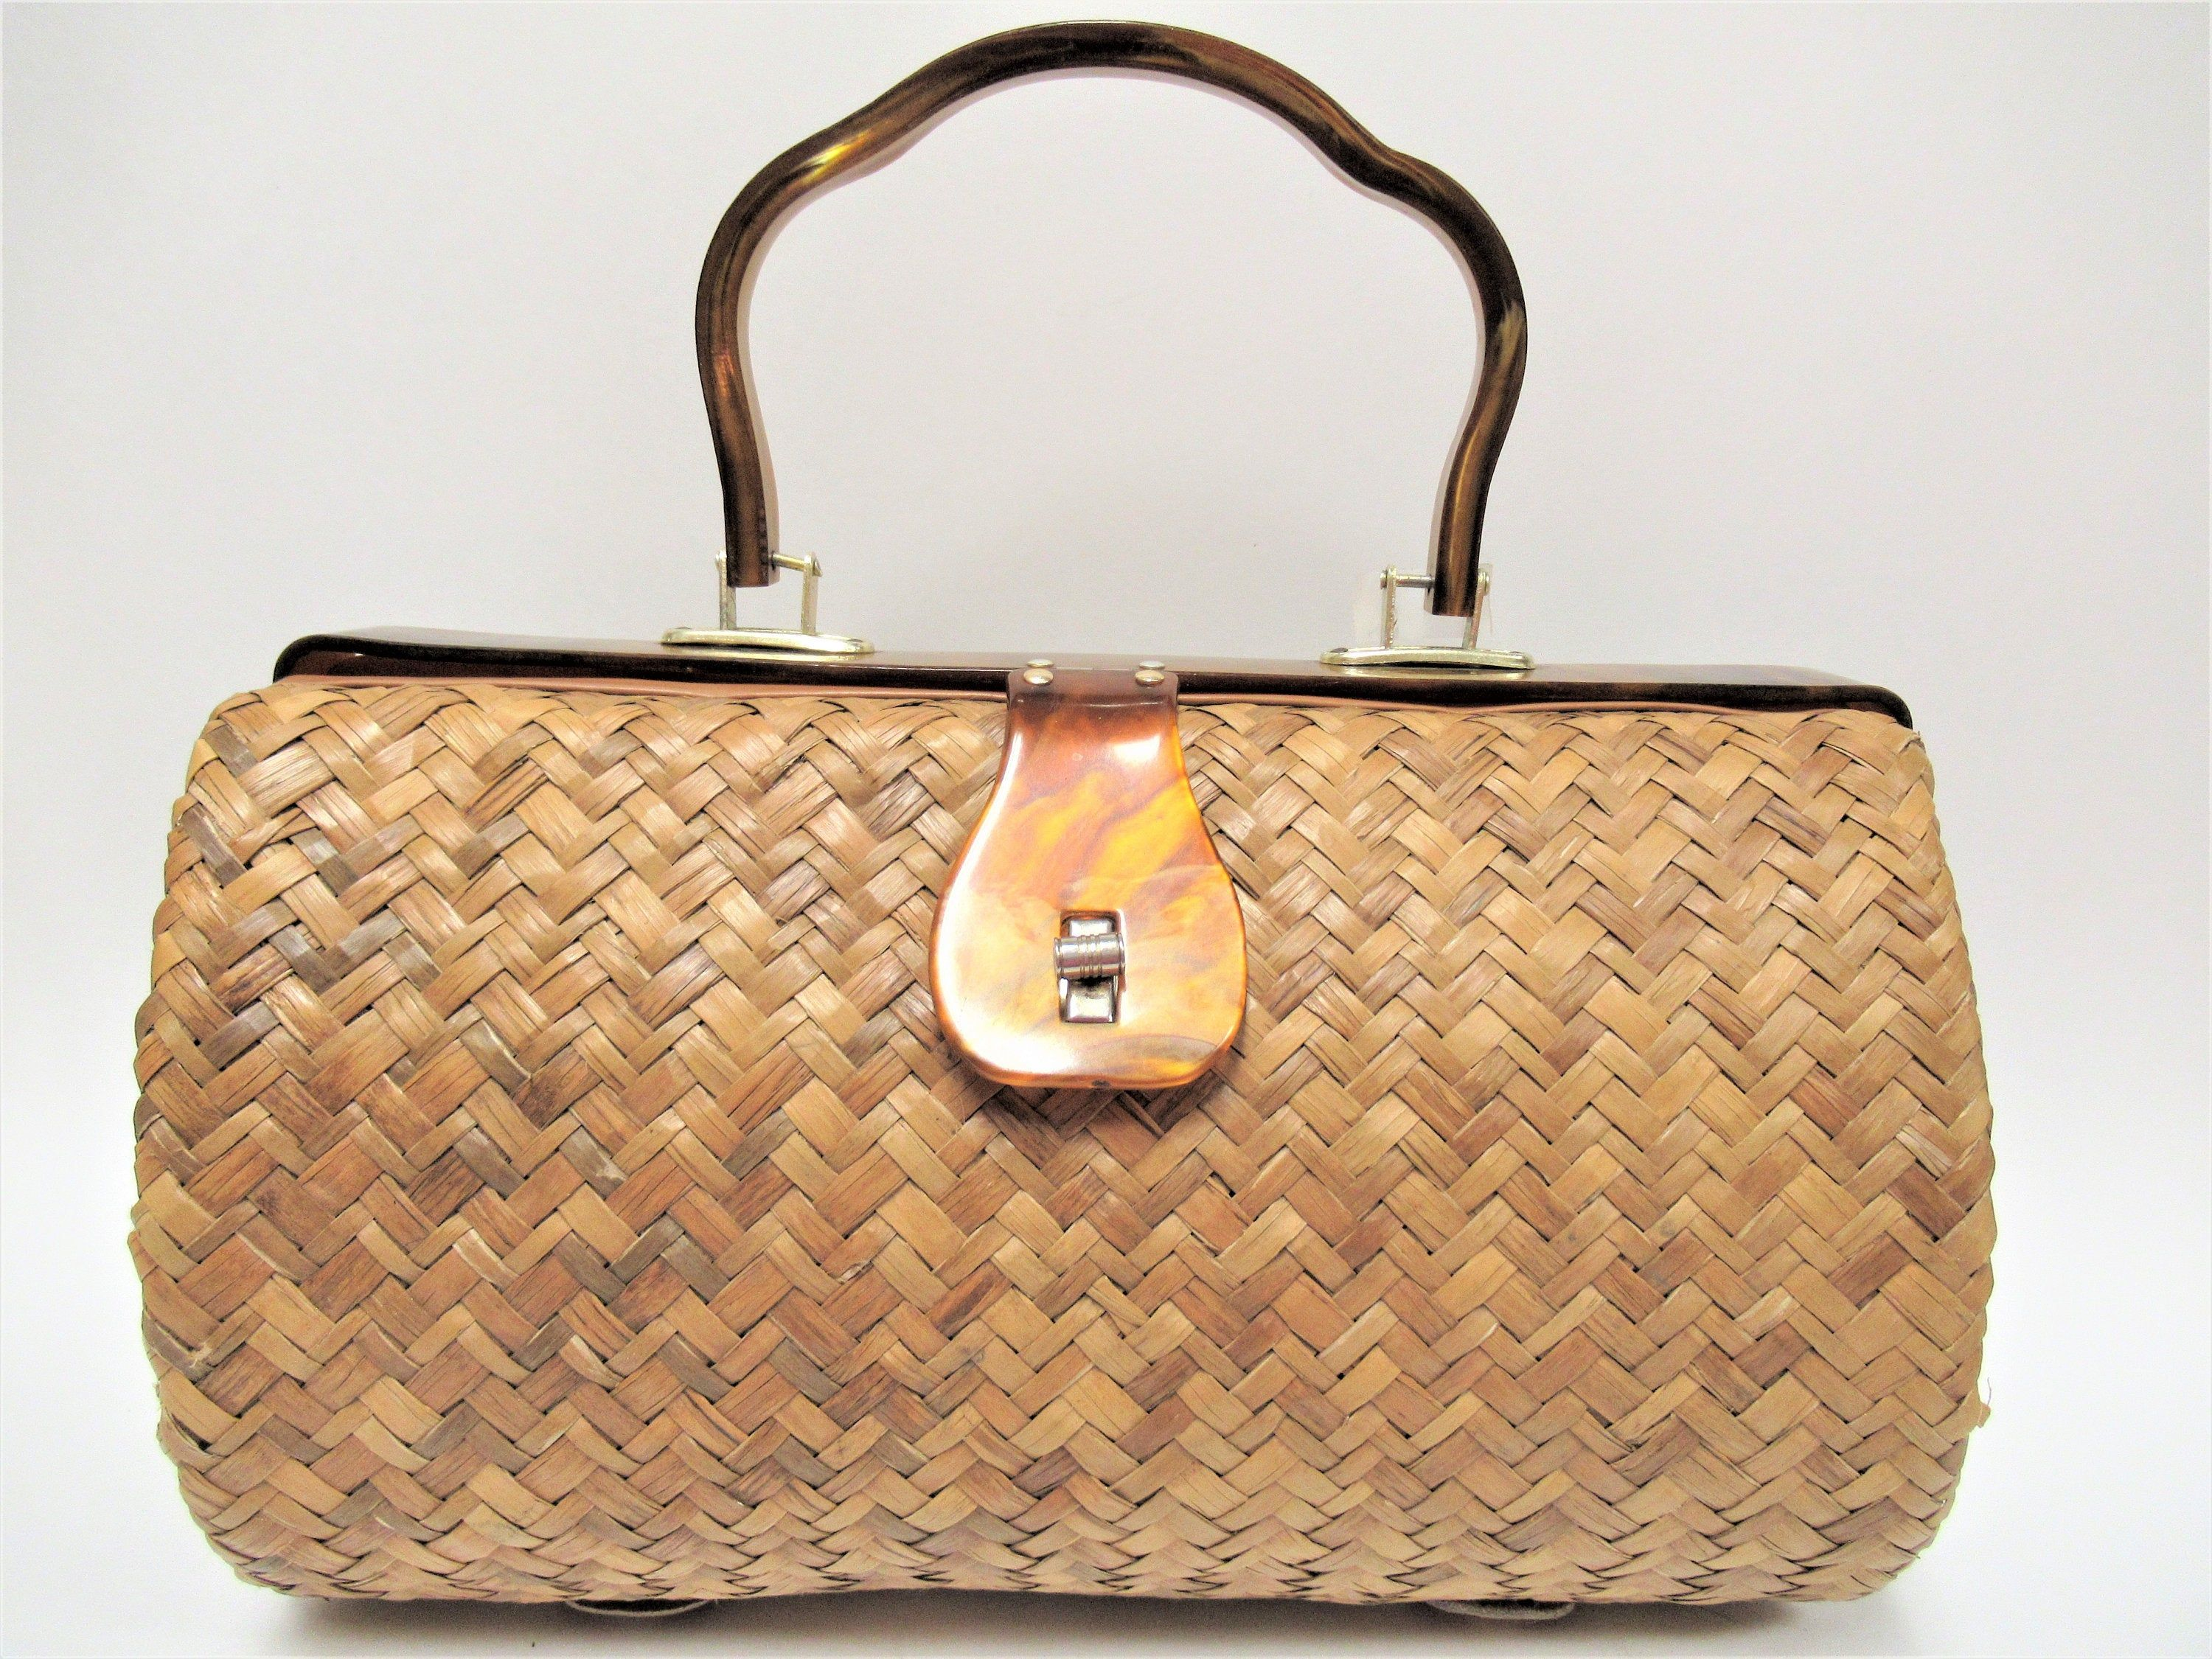 Vintage Mister Ernest Natural Straw Handbag 1960s 70s Mr Ernest Simon Hong Kong Summer Bag Woven Rafia Purse W Straw Handbags Raffia Bag Vintage Handbags